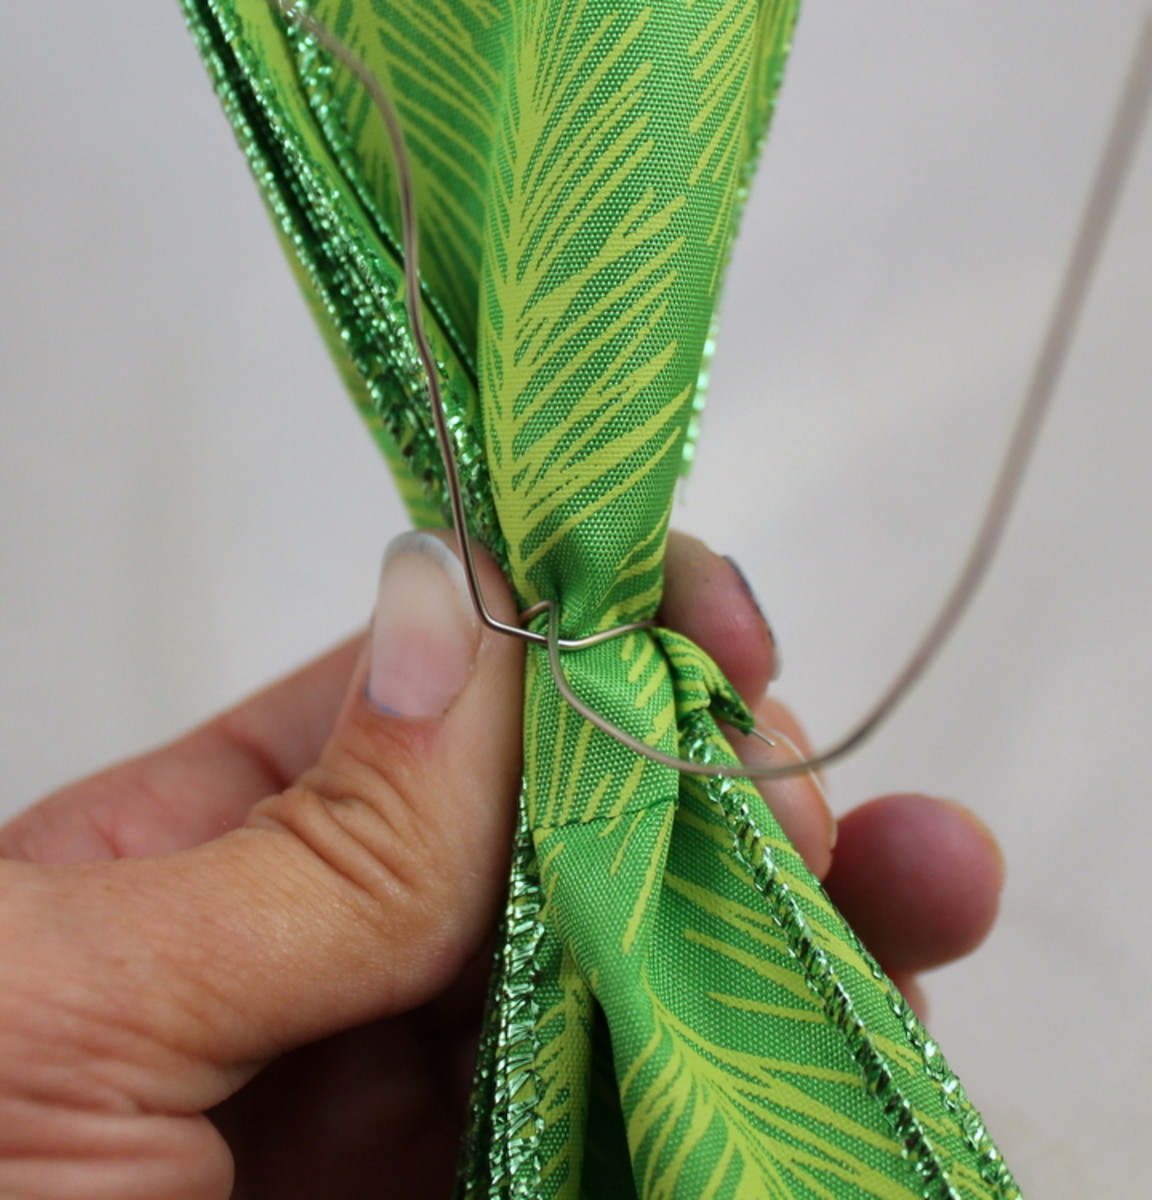 Wrap wire around the pinched middle